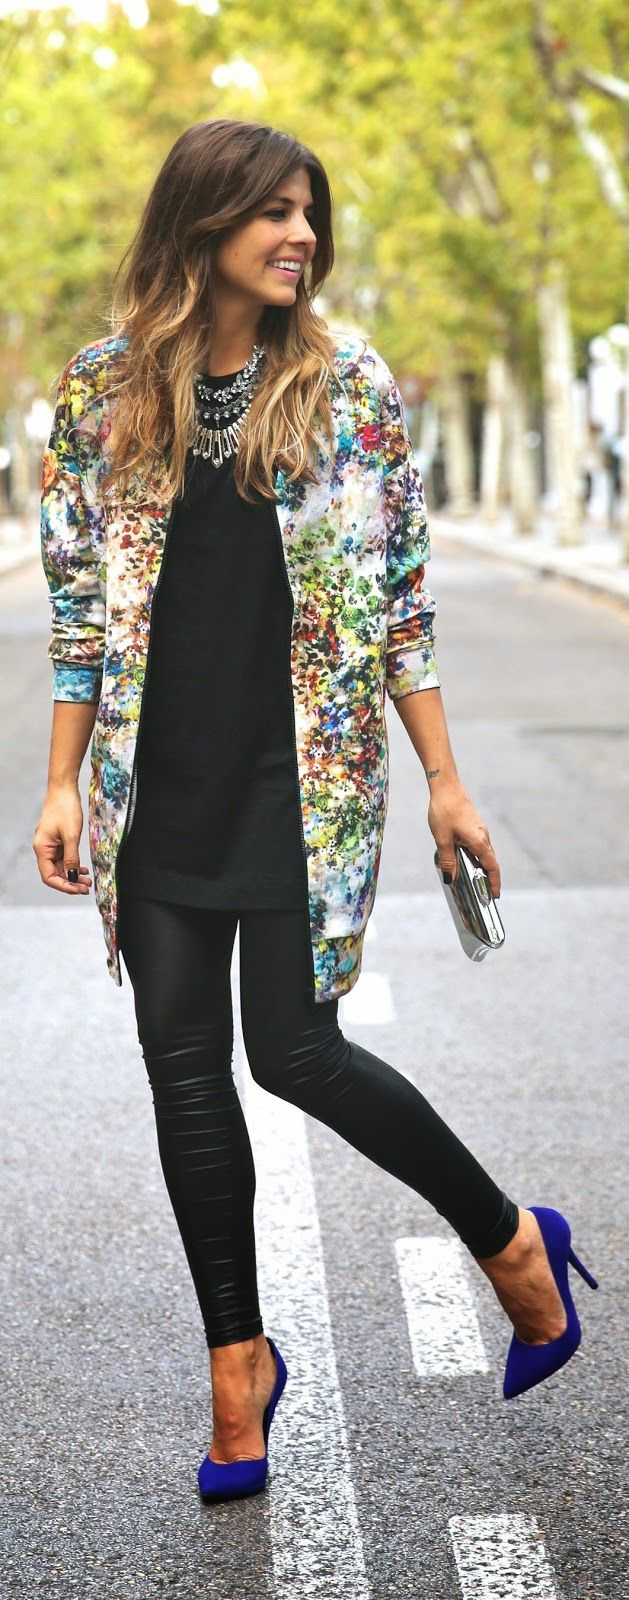 Try wearing a colorfully printed coat over an all black outfit to brighten up your outfit. Electric blue heels wouldn't hurt either! ;)